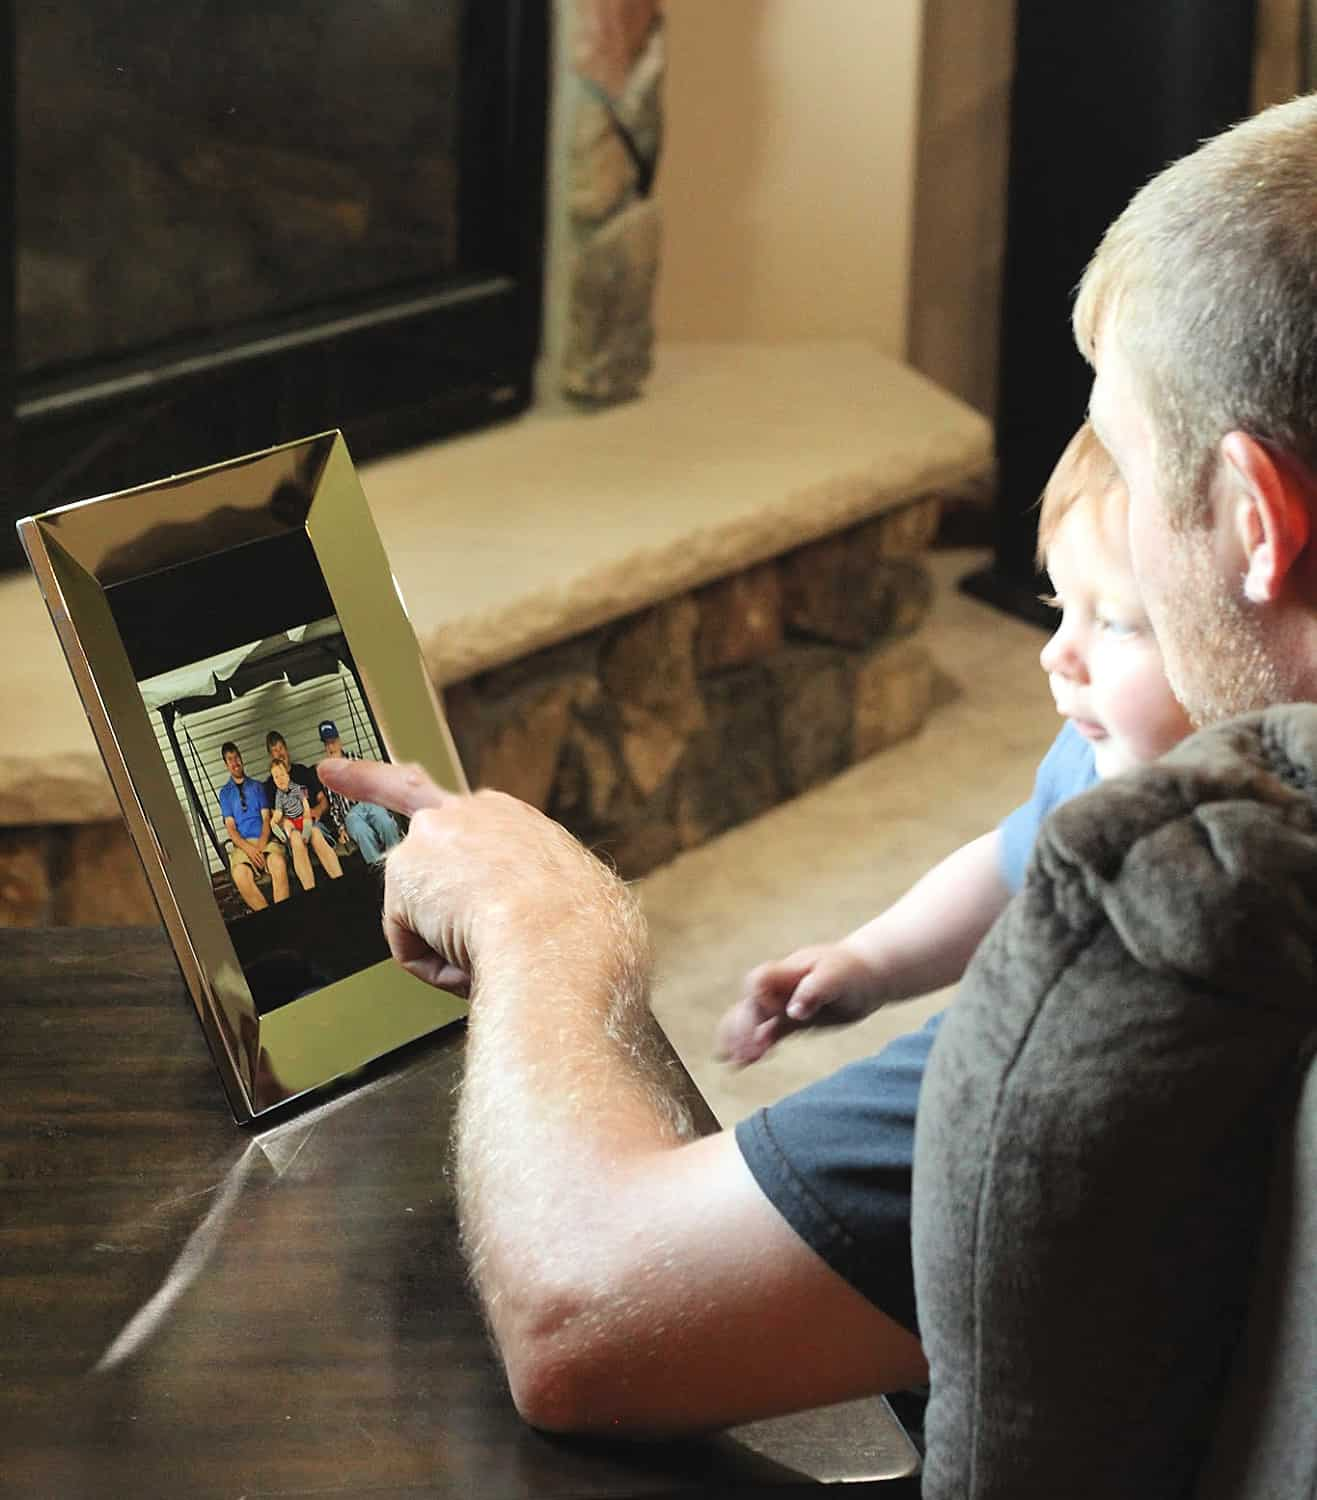 father and son looking at photo frame